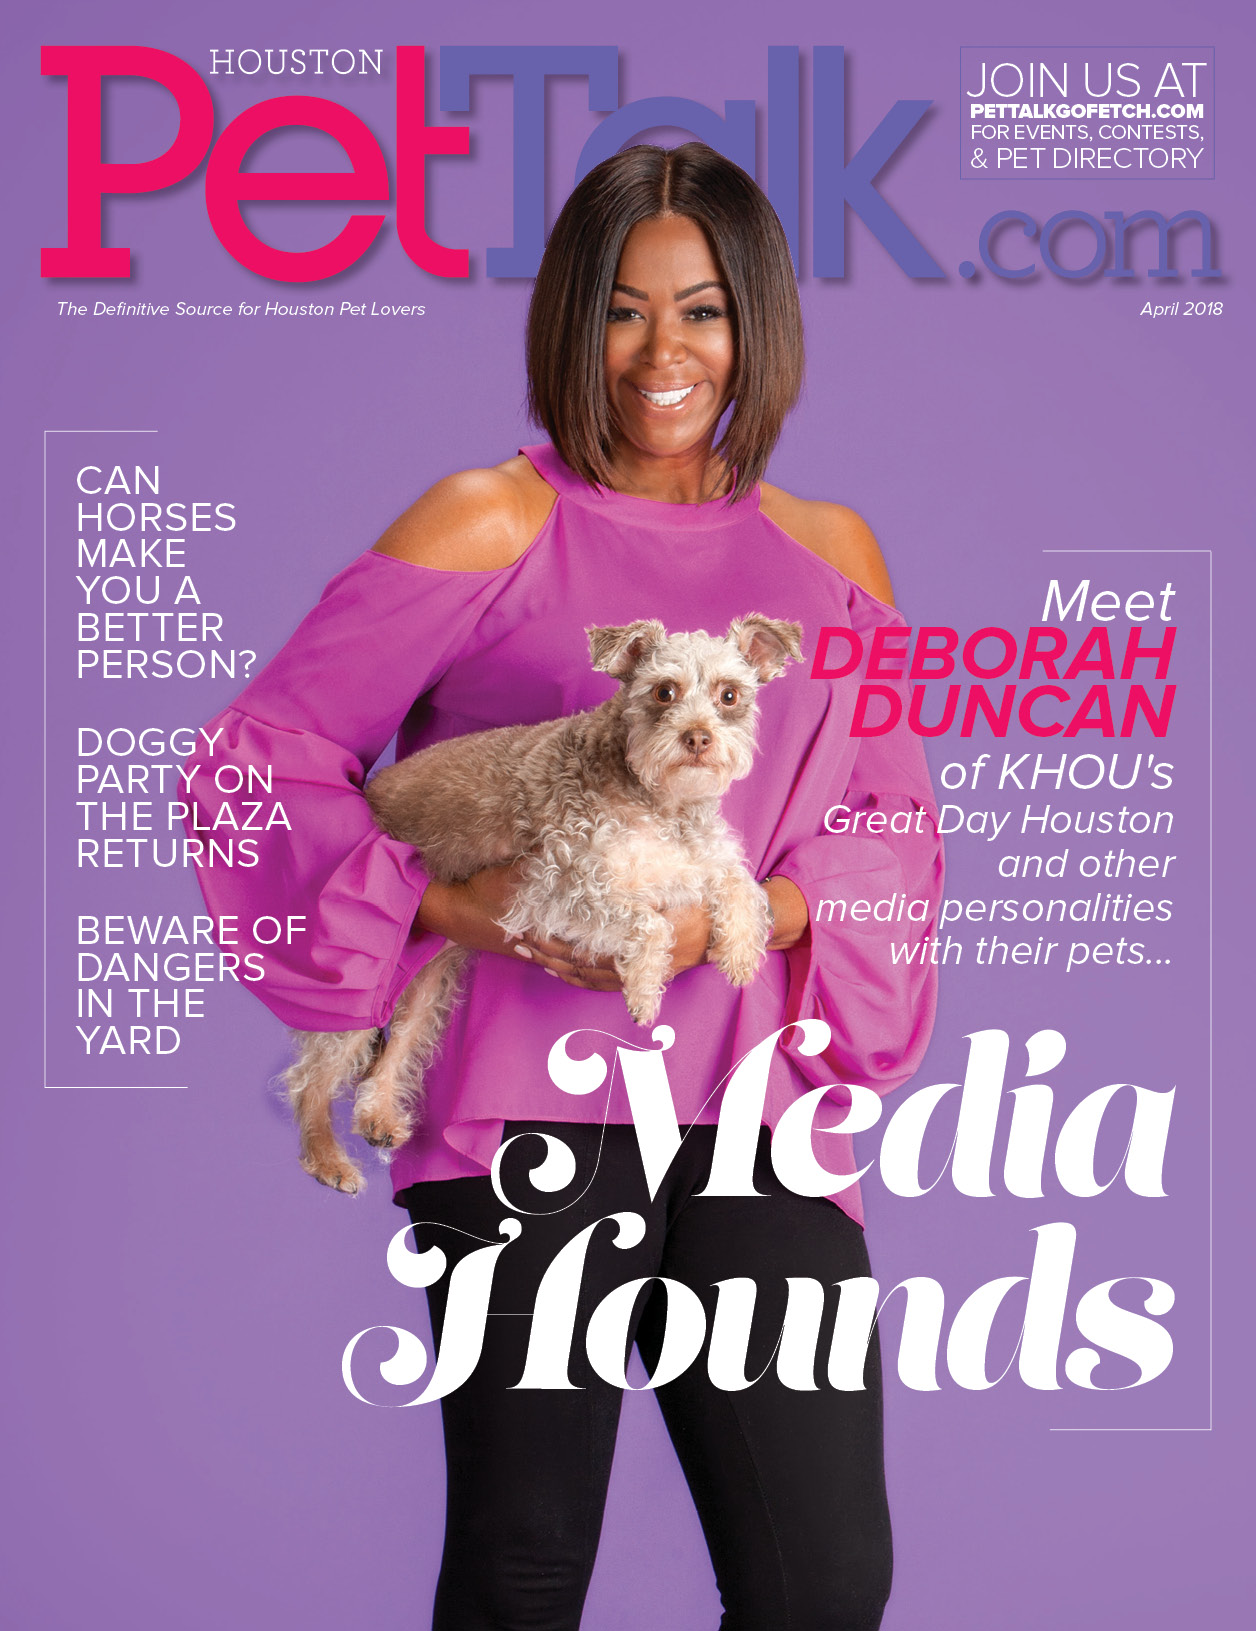 April 2018 Digital Issue of Houston PetTalk